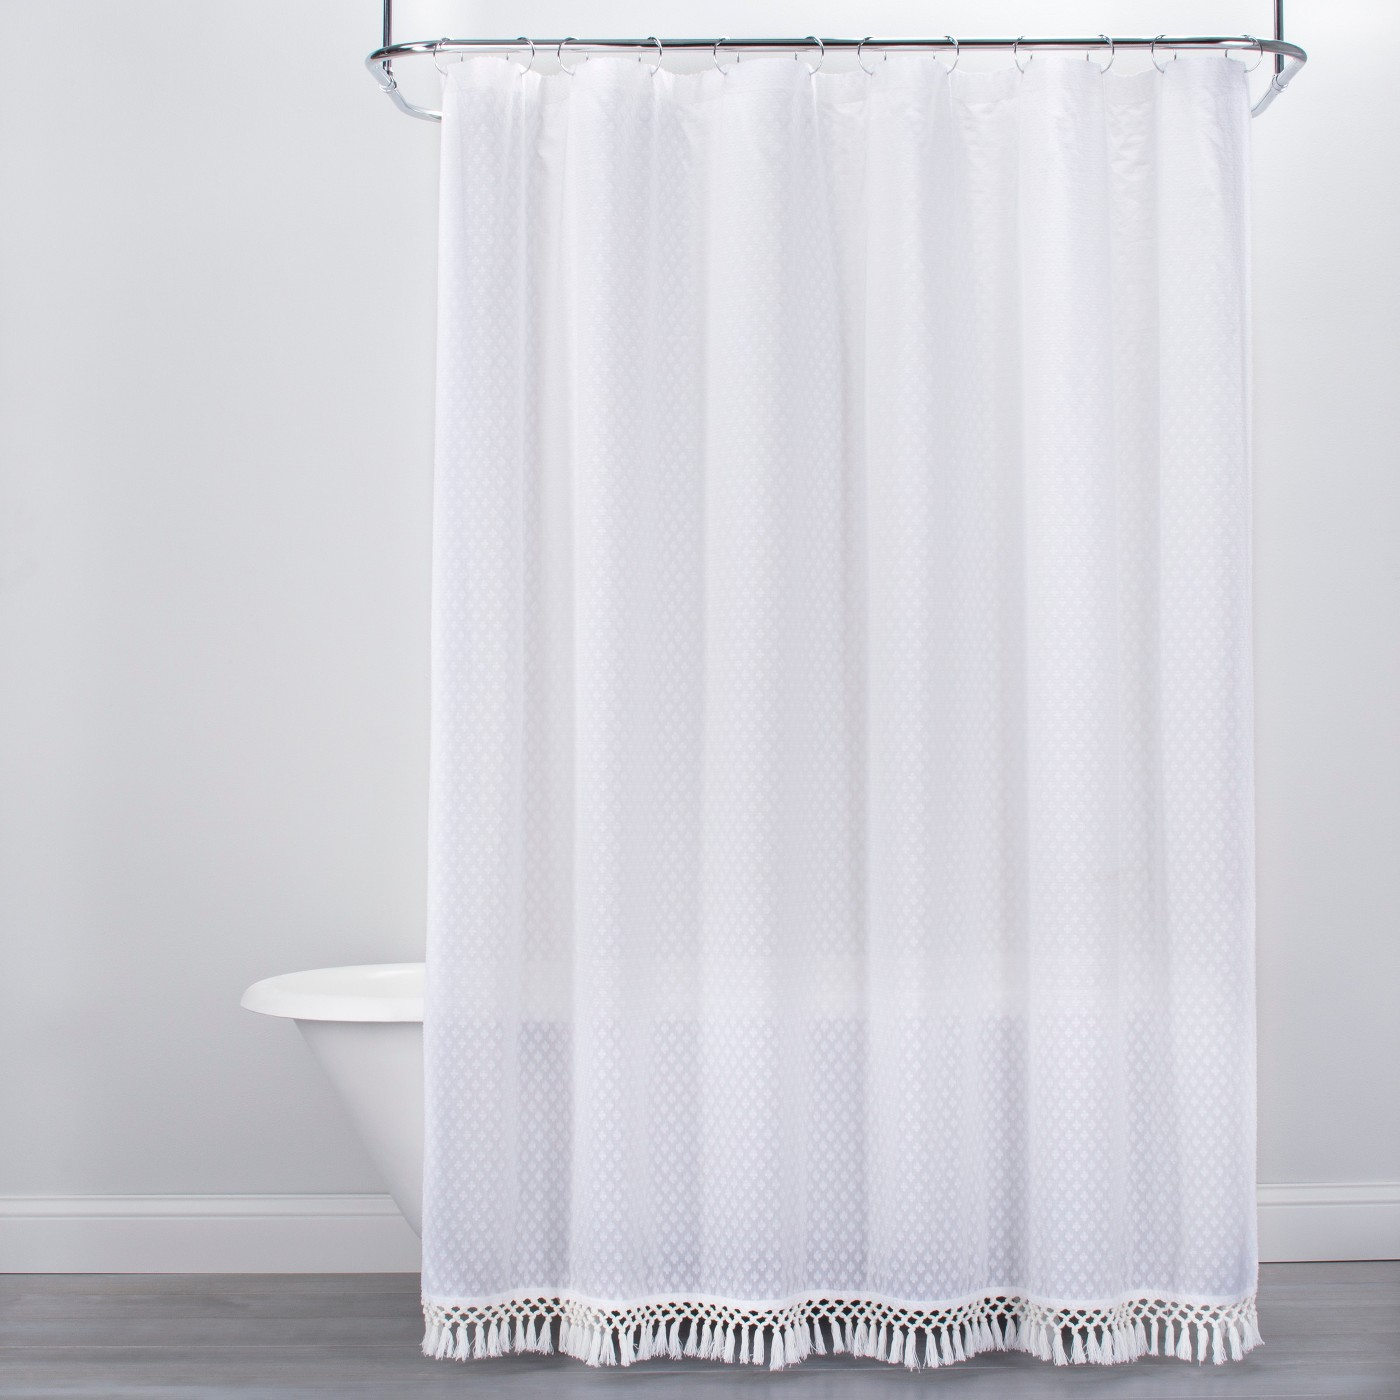 Textured Dot Fringed Shower Curtain White - Opalhouse™ - image 1 of 3